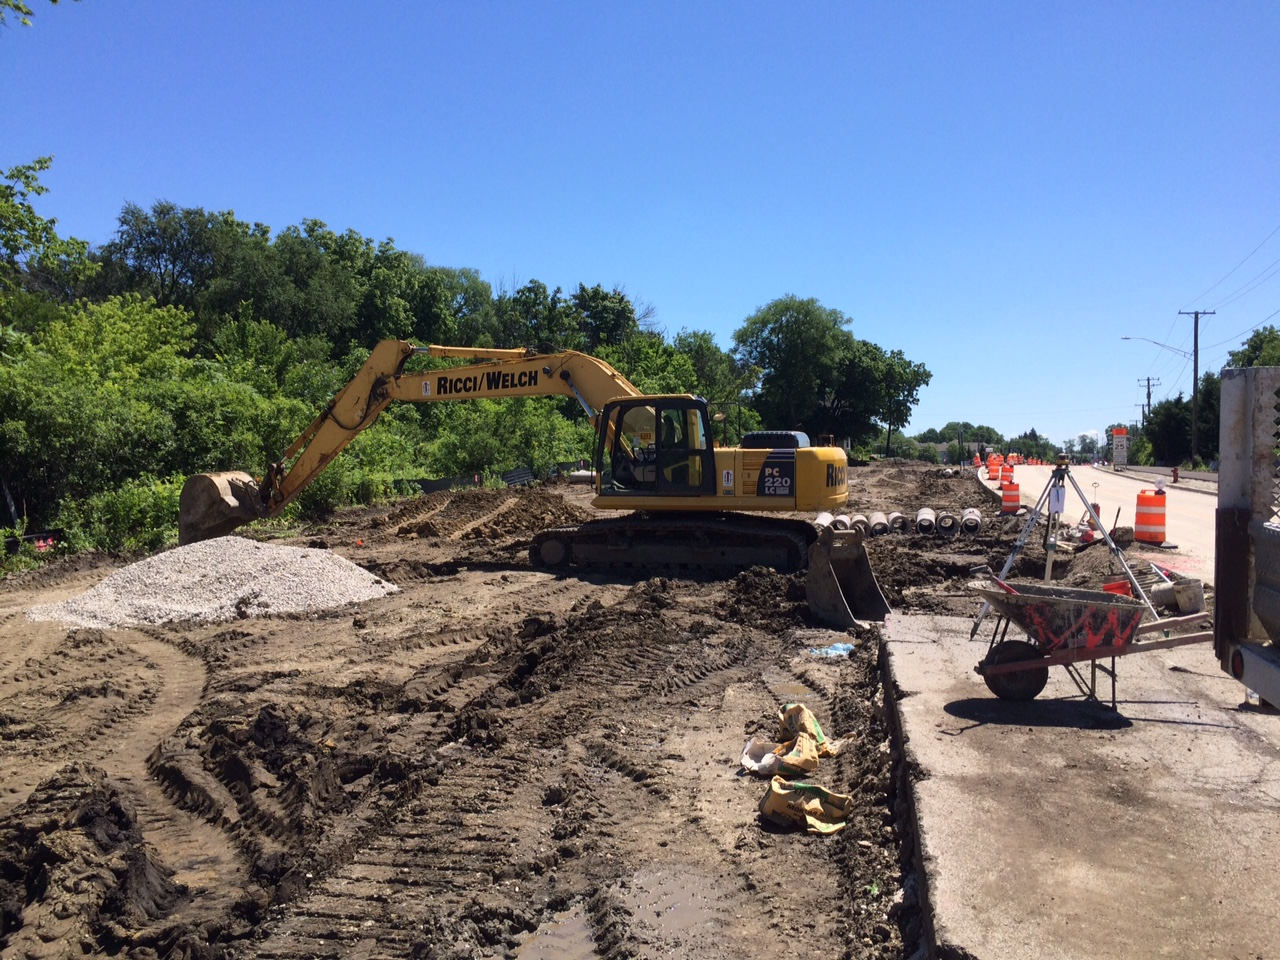 Storm sewer operations east of Kautz Road